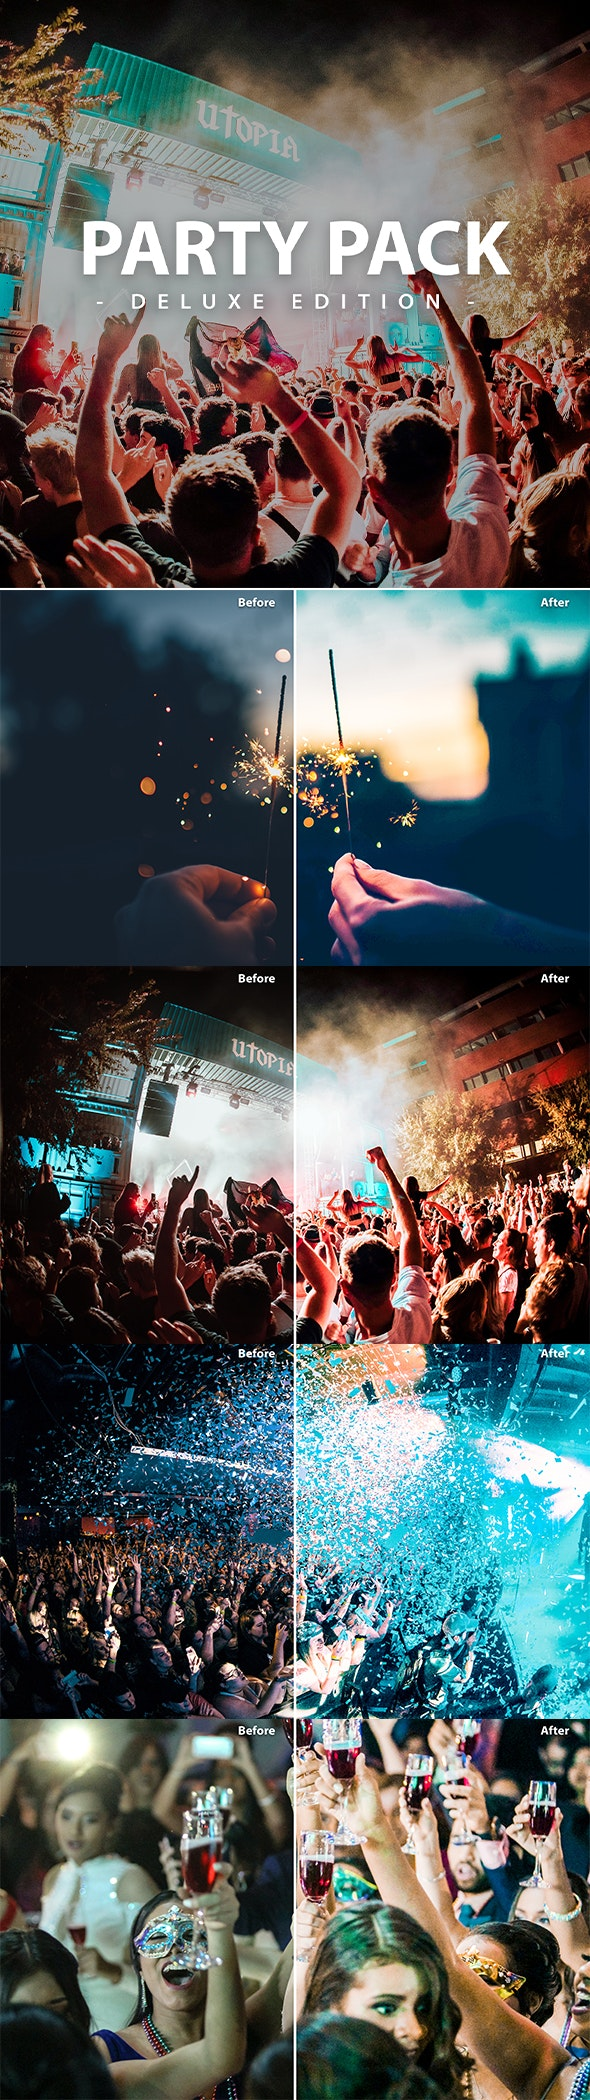 Party Pack | Deluxe Edition | for Mobile and Pc - Lightroom Presets Add-ons